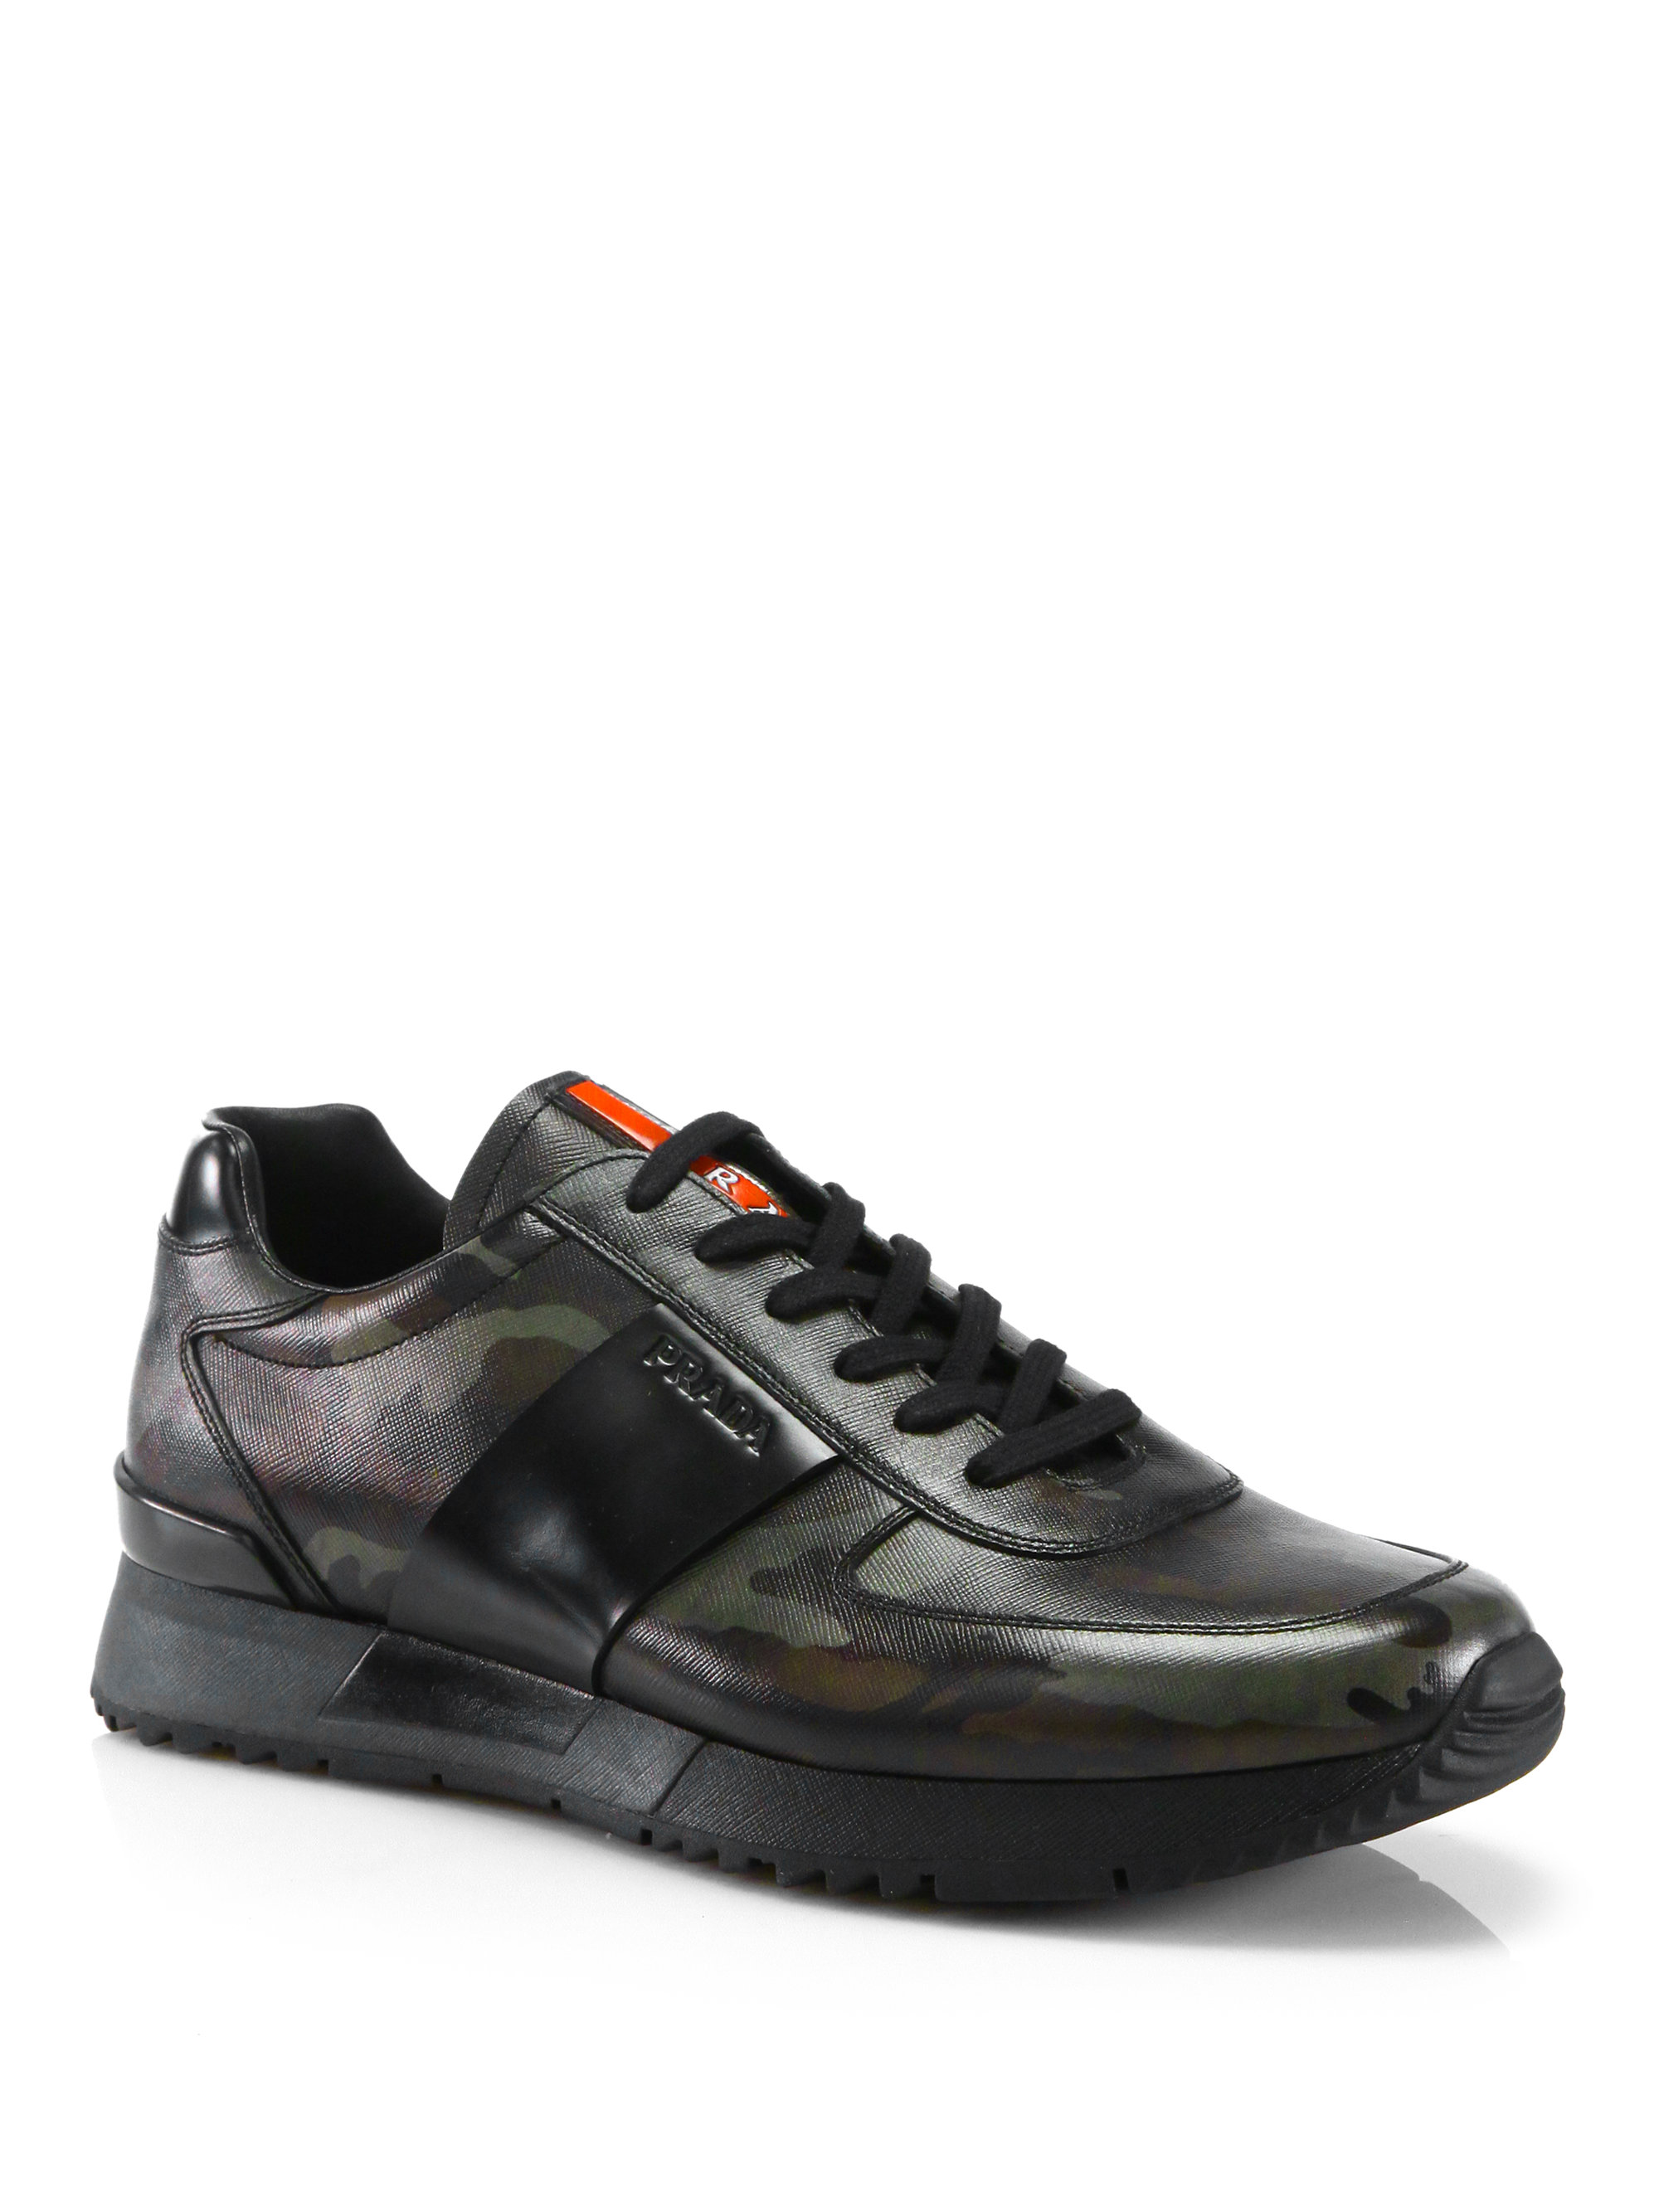 Lyst Prada Camouflage Print Running Sneakers In Black